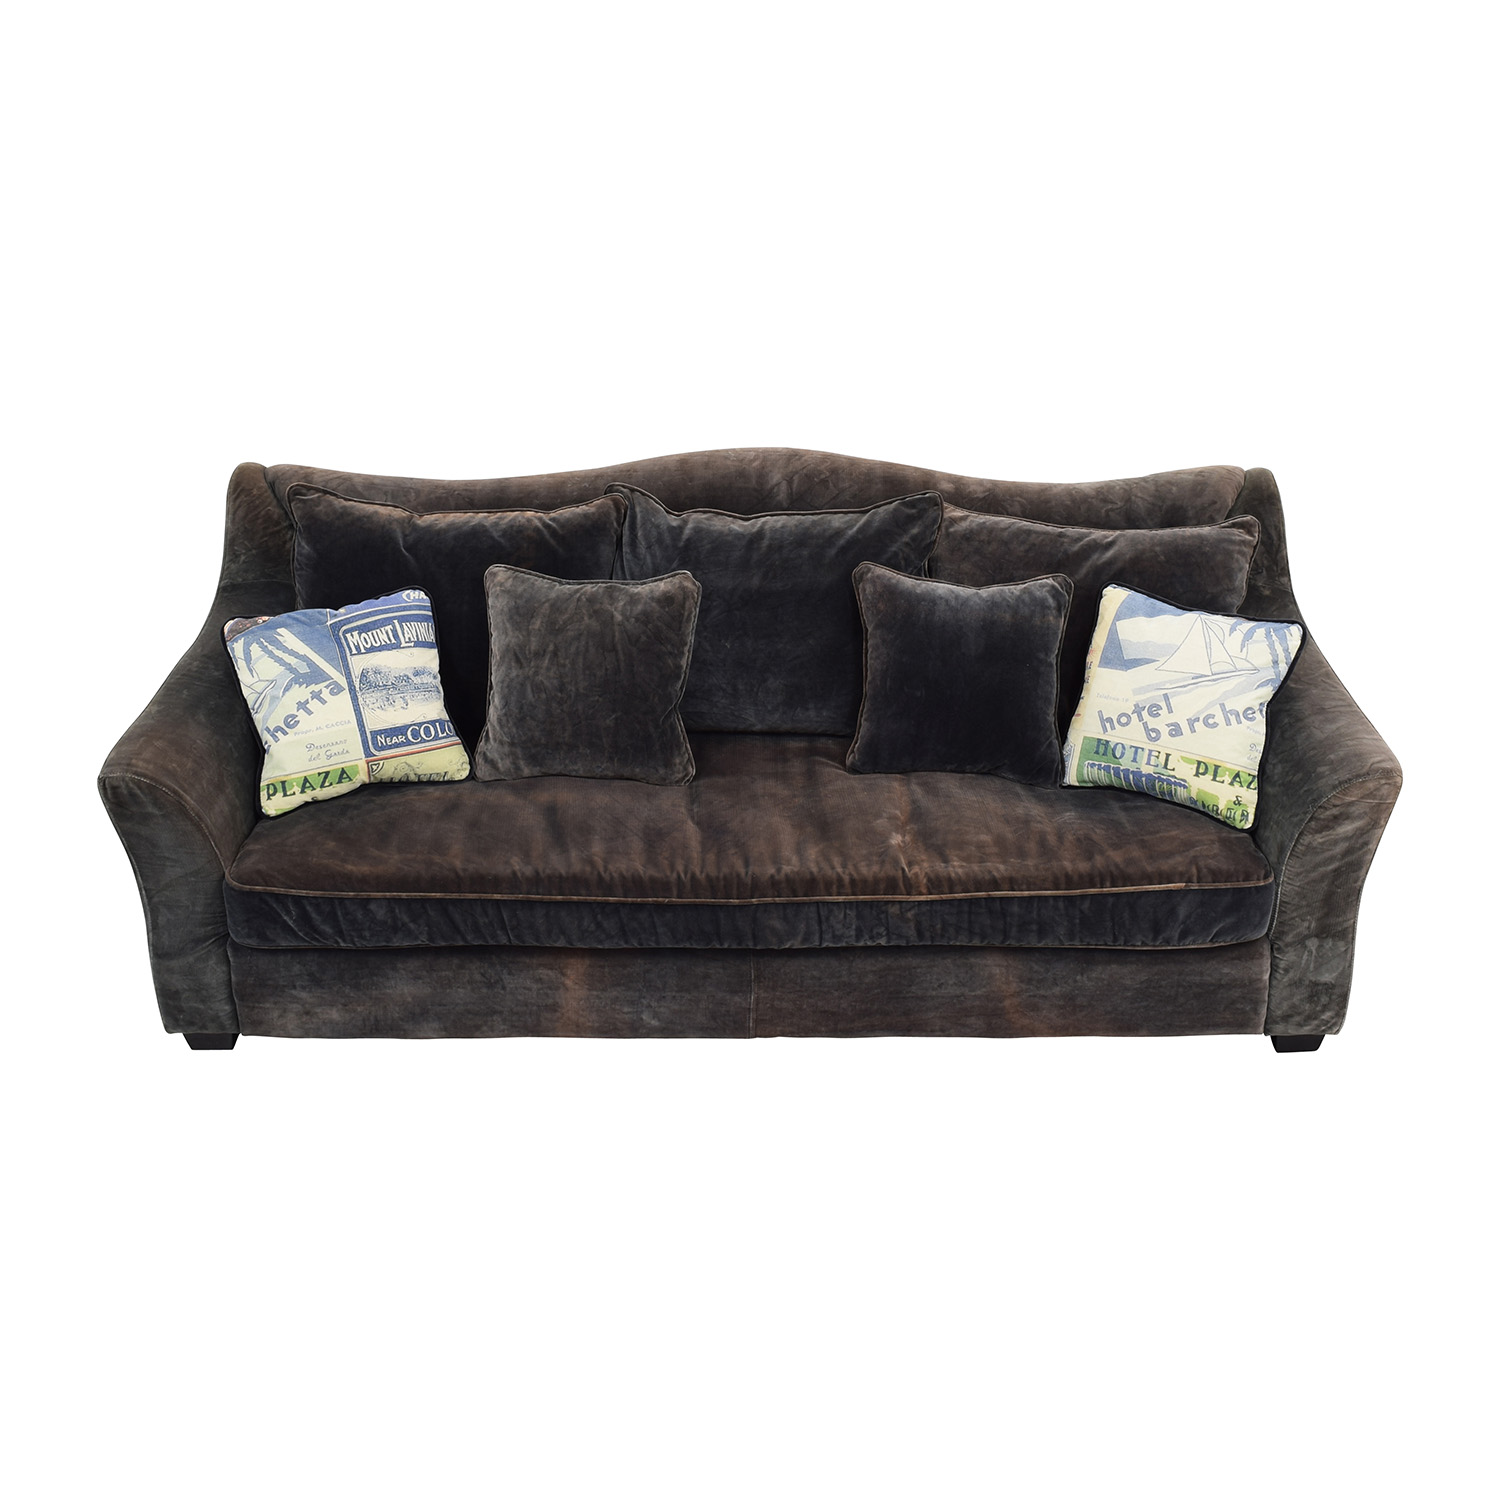 ABC Carpet & Home Timothy Oulton Grey Sofa / Sofas